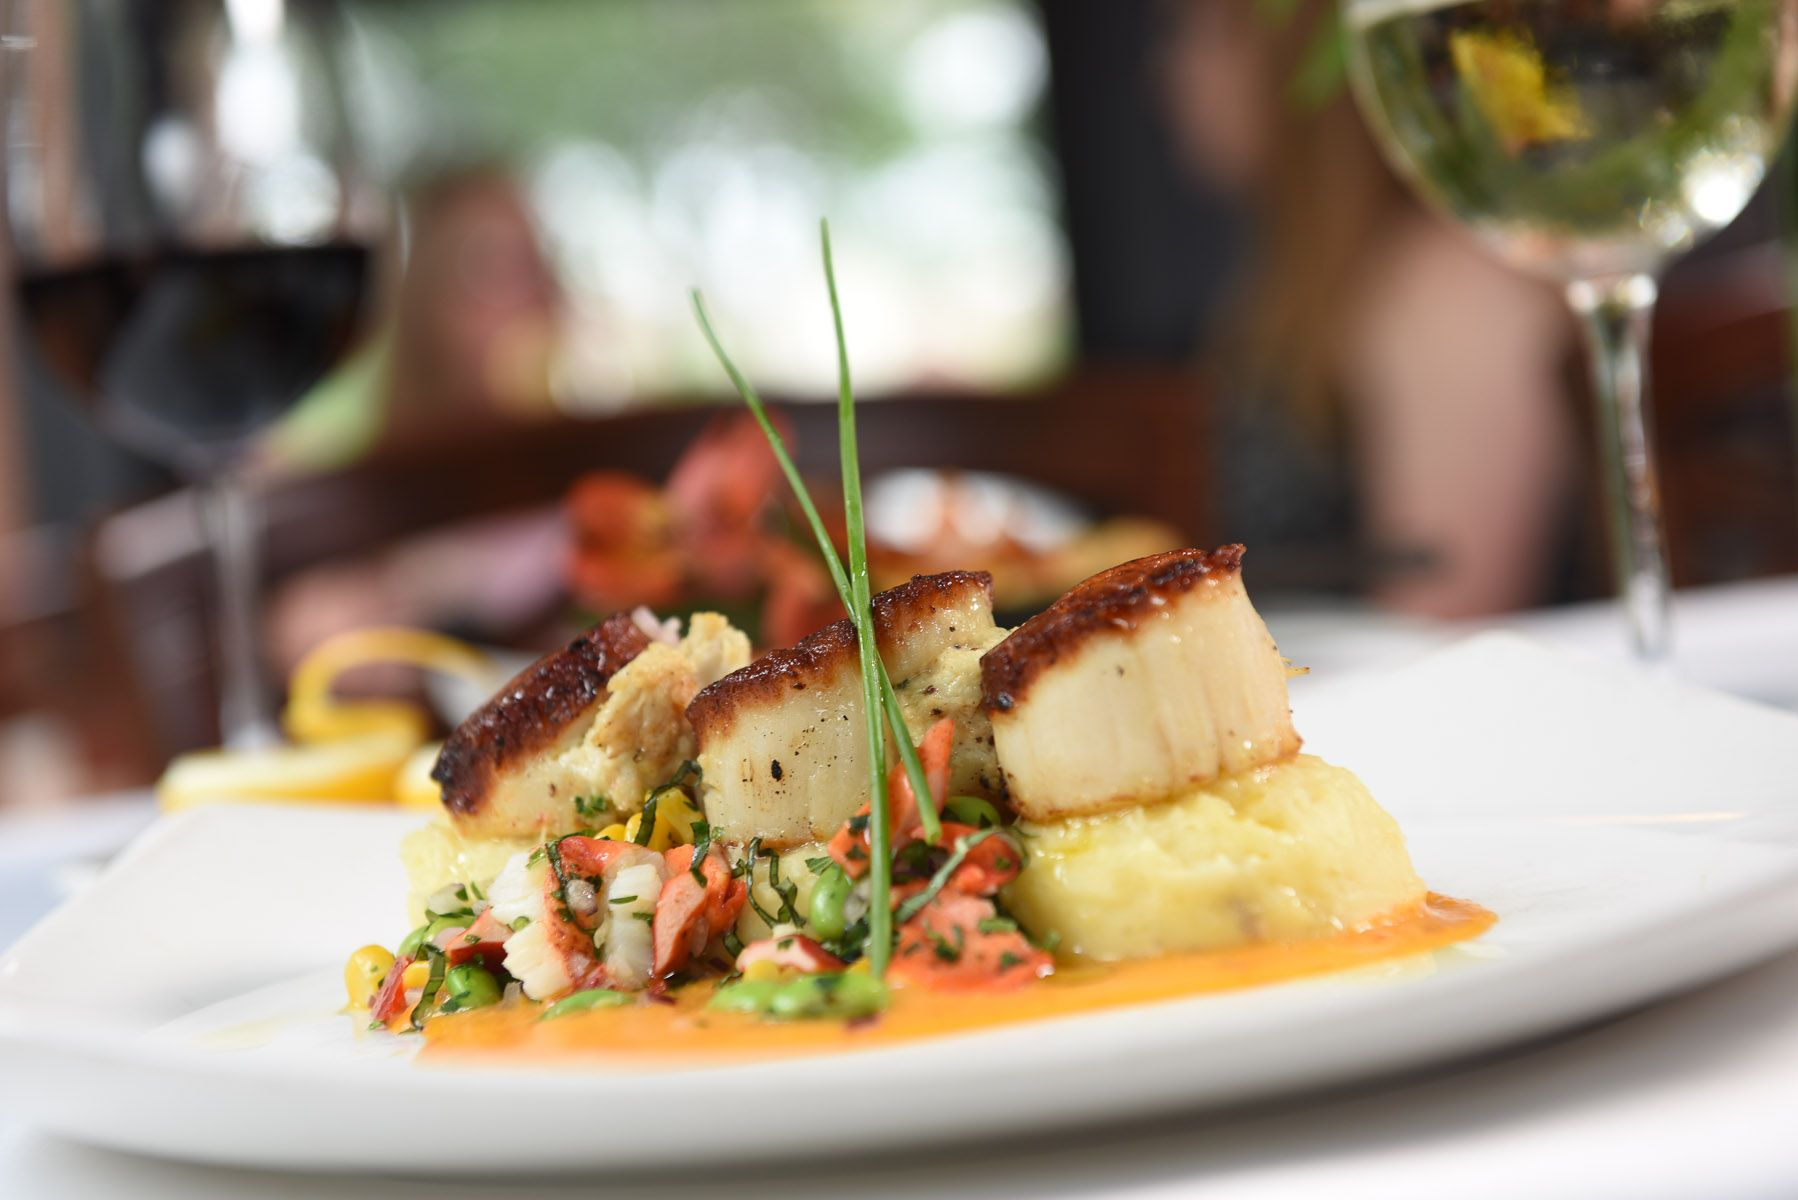 Grille 29 Is A Sophisticated Yet Casual Steak And Seafood Restaurant With Two Locations One